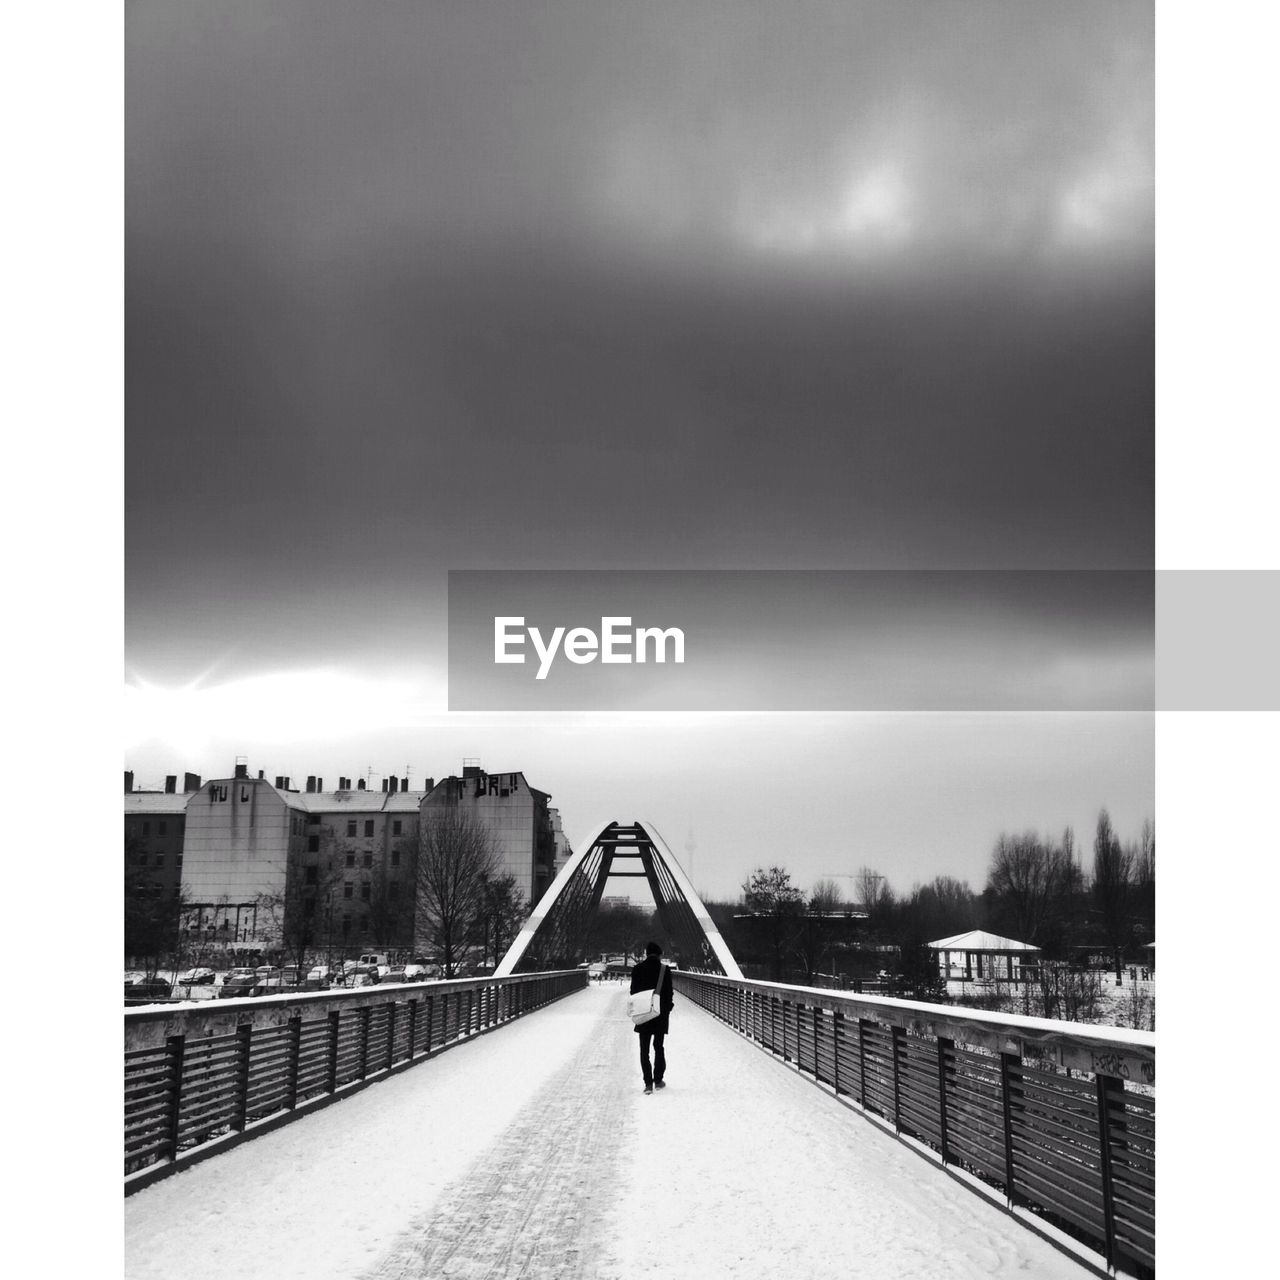 Rear View Of Person Walking On Snow Covered Bridge Against Cloudy Sky